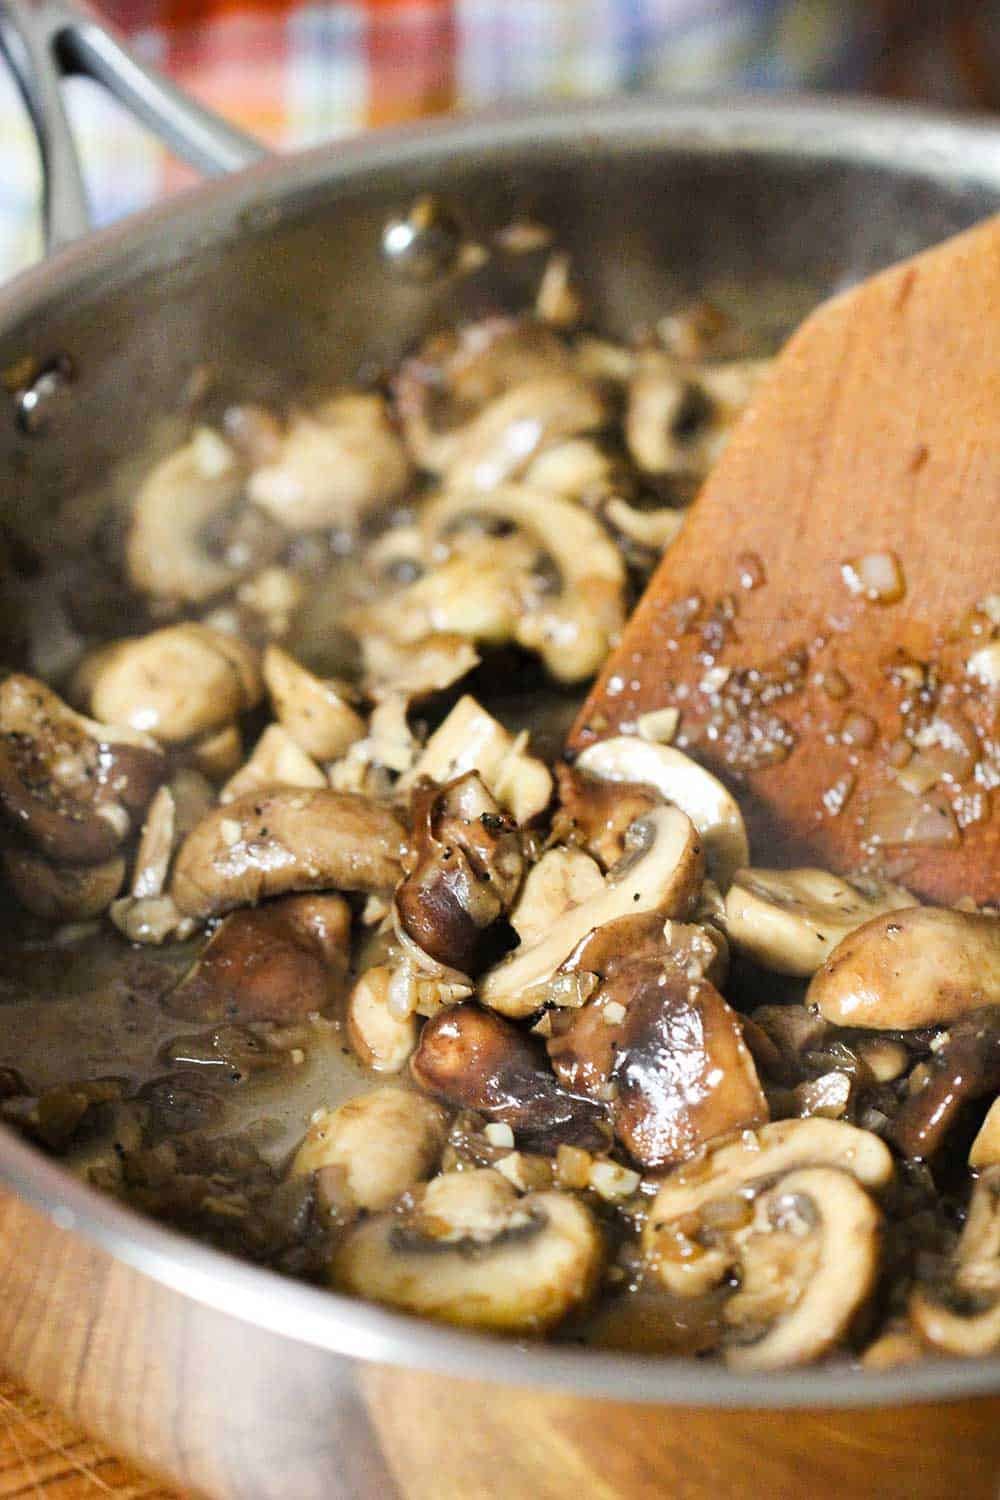 A large skillet with sautéed mushrooms in it being stirred by a wooden spoon.